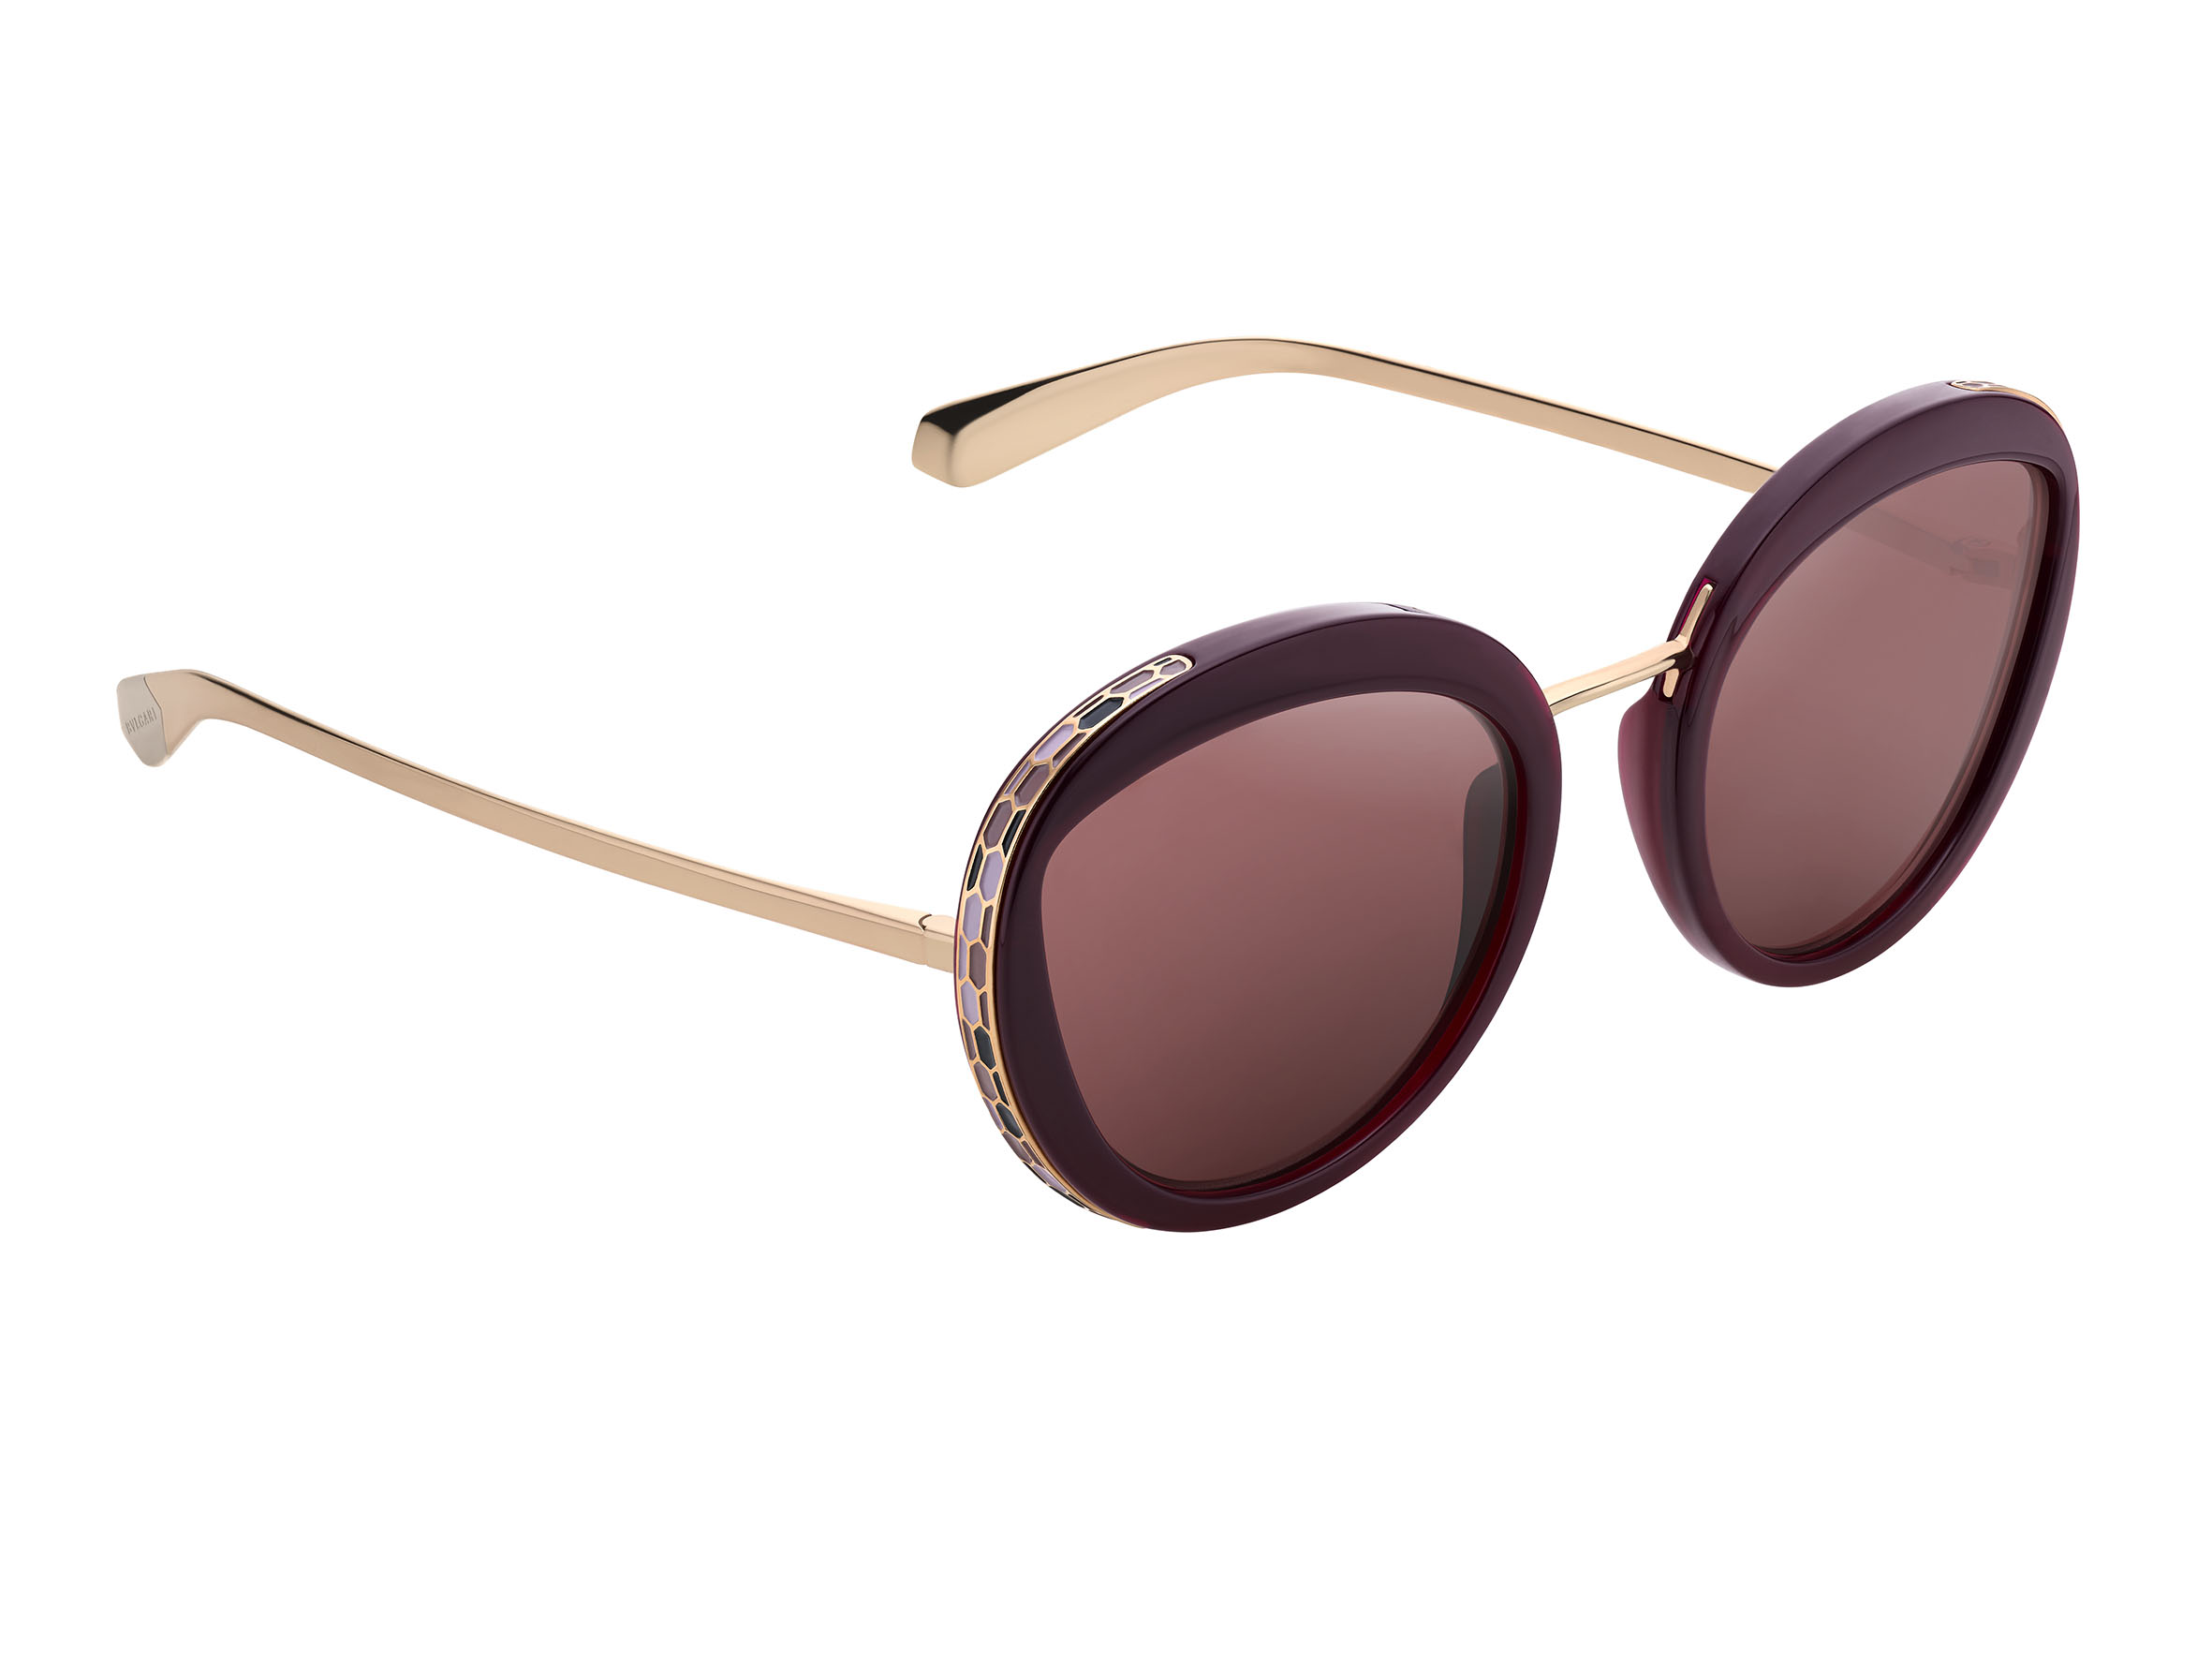 64608d3128e7 ... of the oversized rounded BVLGARI BVLGARI sunglasses, complete with  on-trend oversized round lenses, sets off the crystal decorations while  maintaining ...